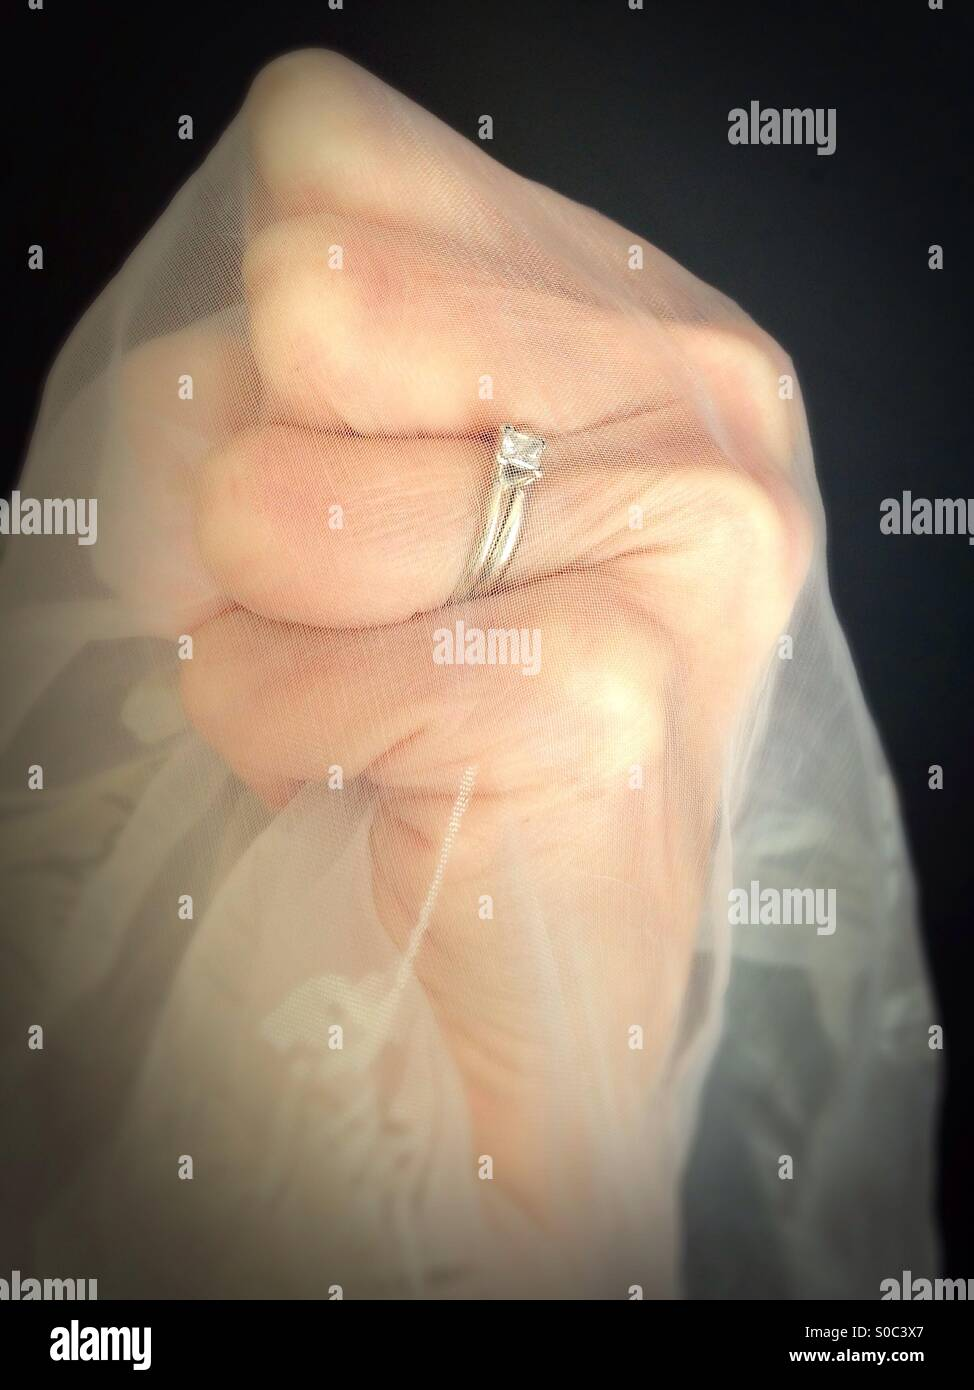 A tight fist wearing a wedding ring and gripping sheer gauzy fabric